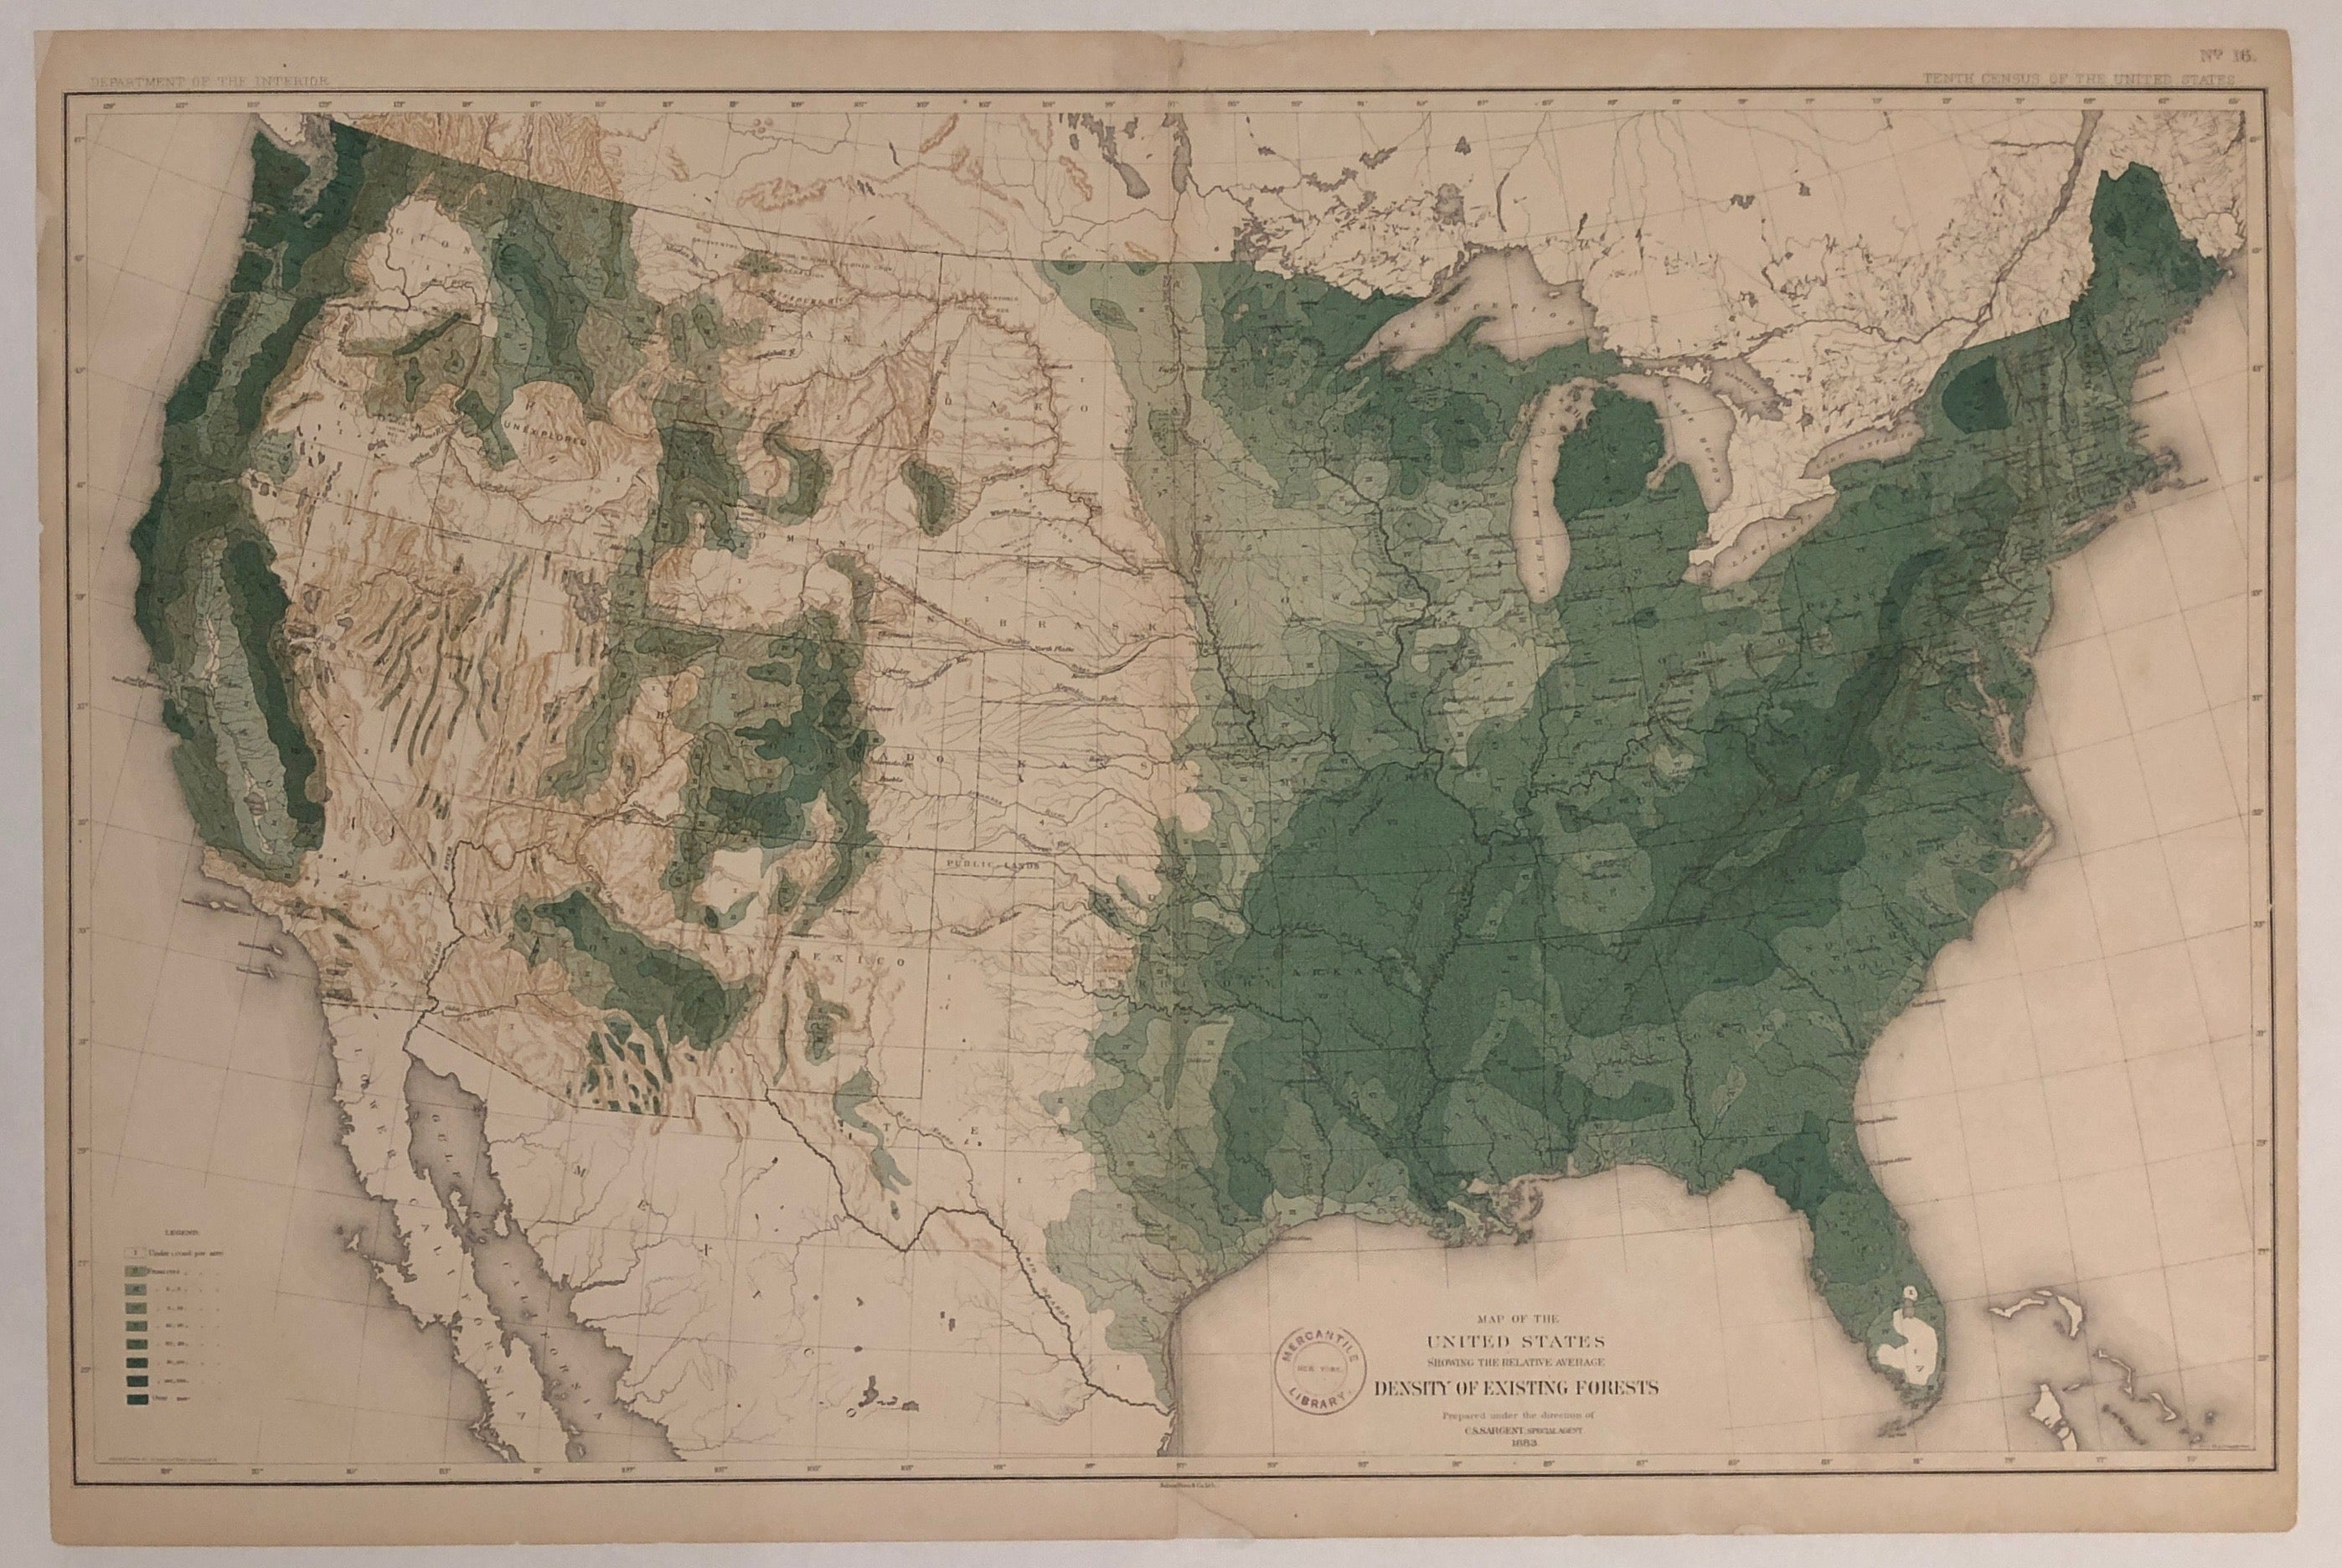 Map of the United States Showing The Relative Average Density of Existing Forests Poster